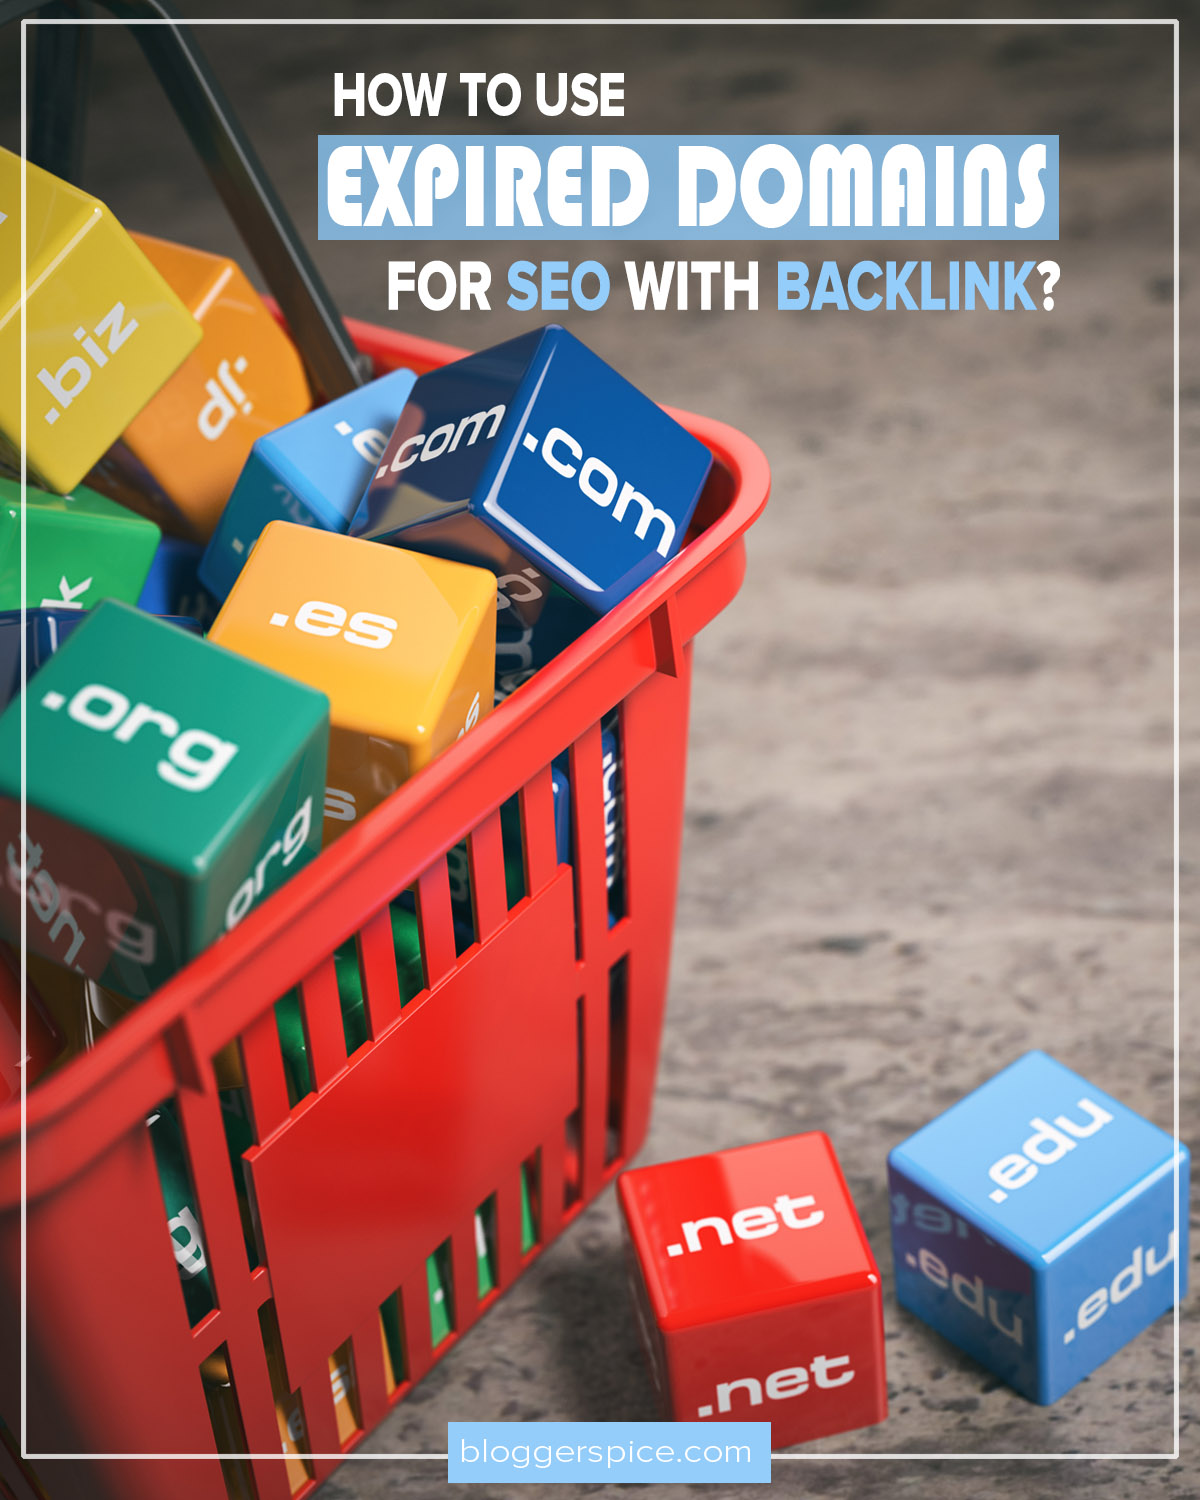 Buying Expired Domains: What's the Best Strategy?